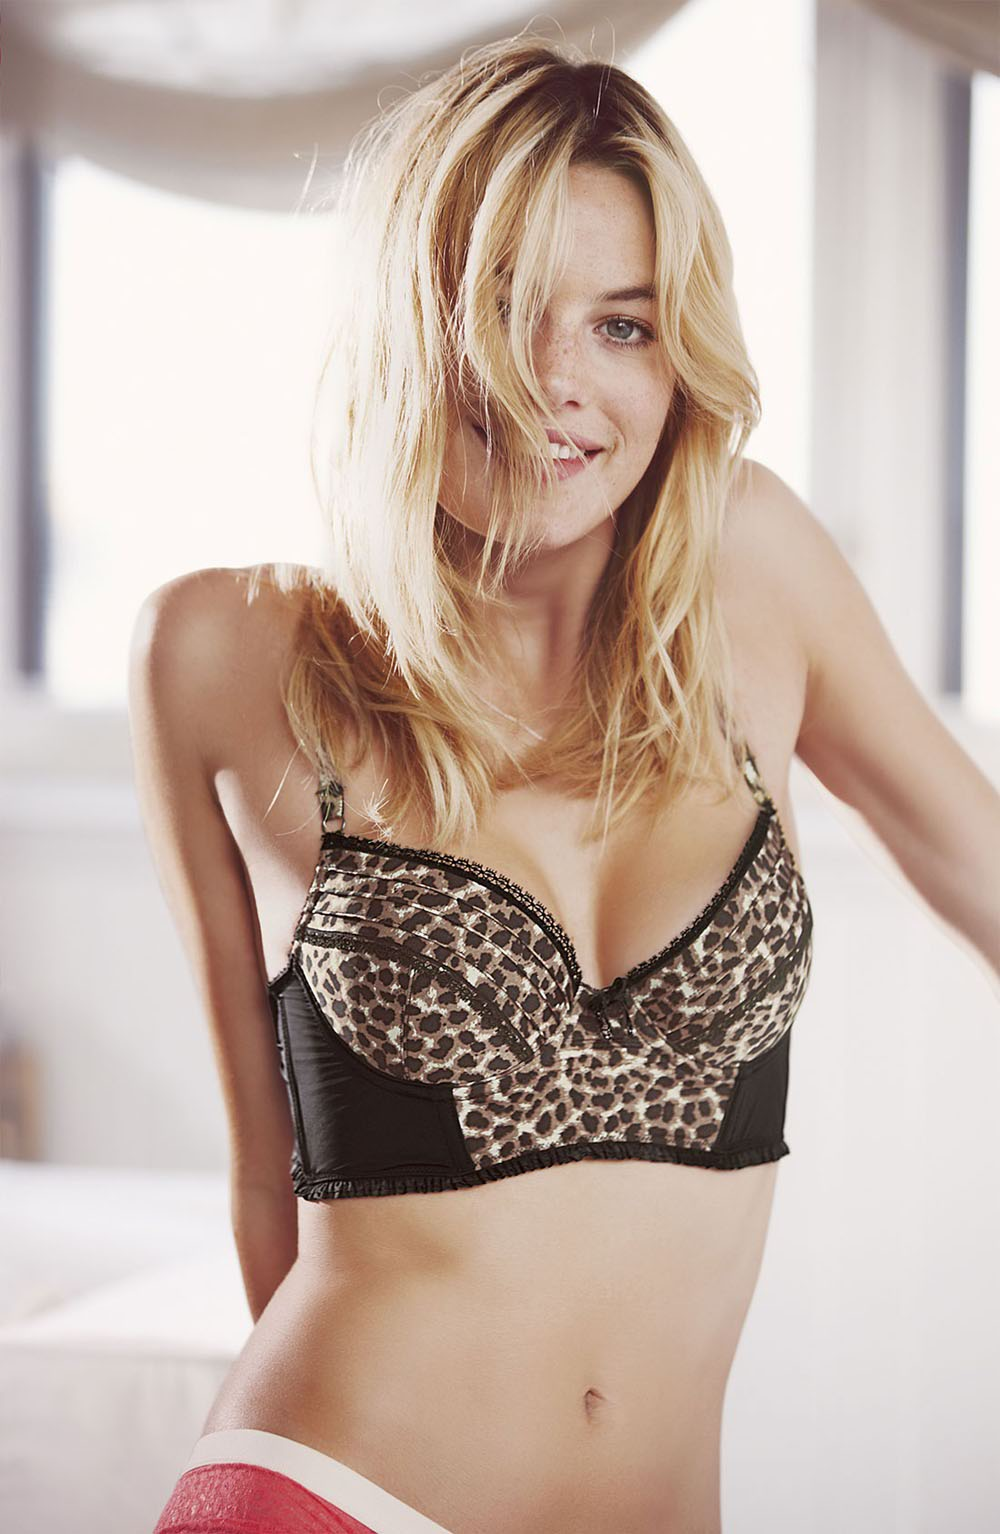 camille rowe1968004938